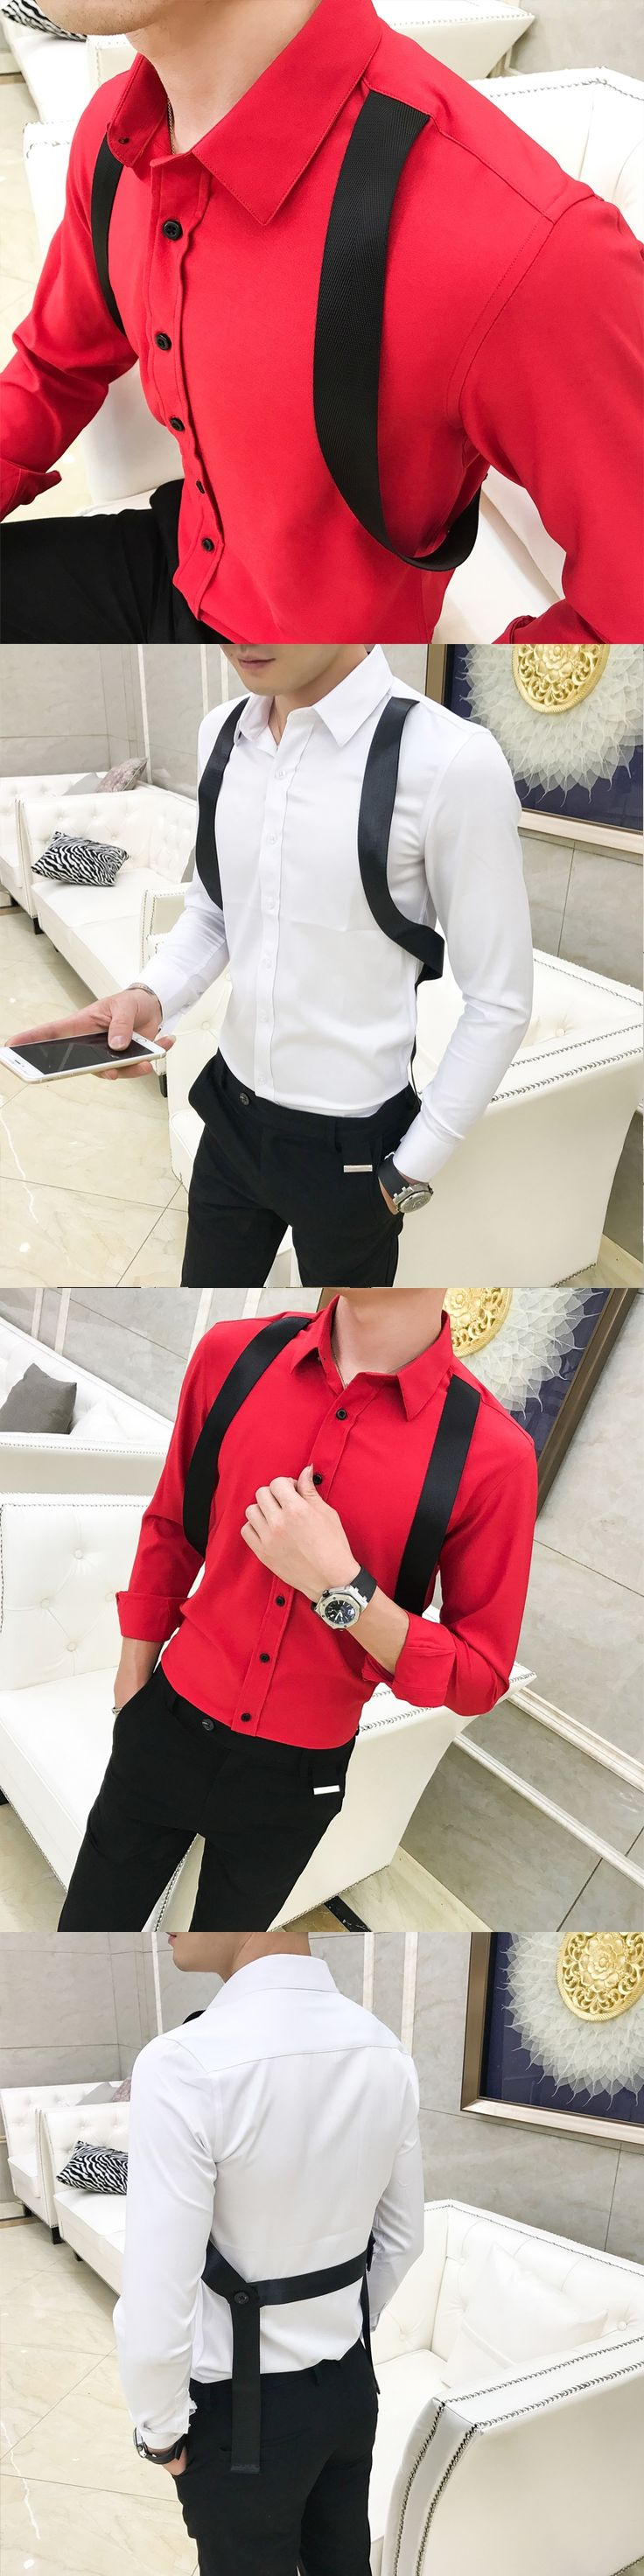 2018 British wind nightclub tide men Slim strap decoration long-sleeved shirt hairdresser red shirt men evening dress shirt